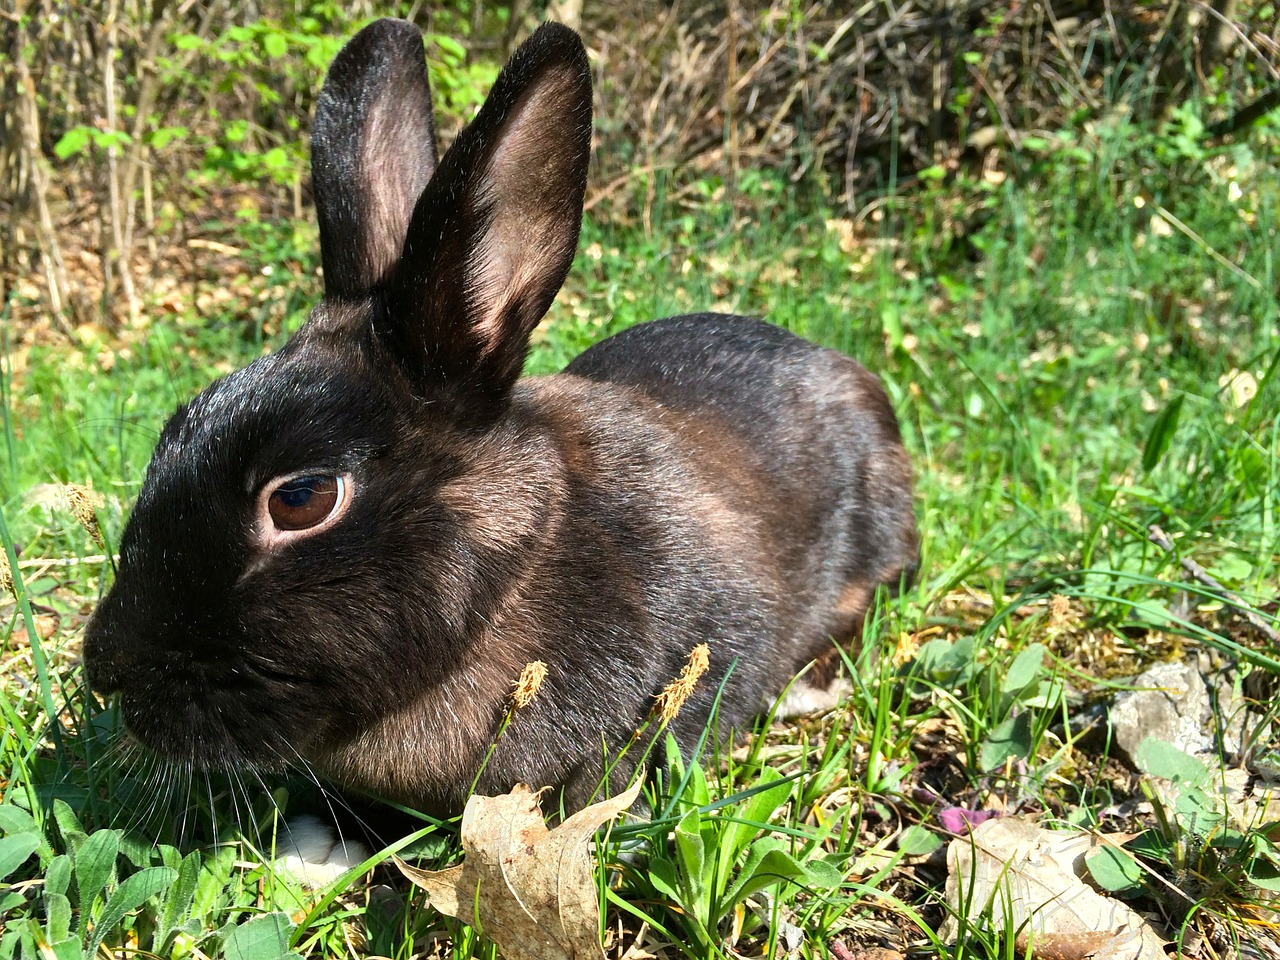 30 Interesting Facts About Rabbits